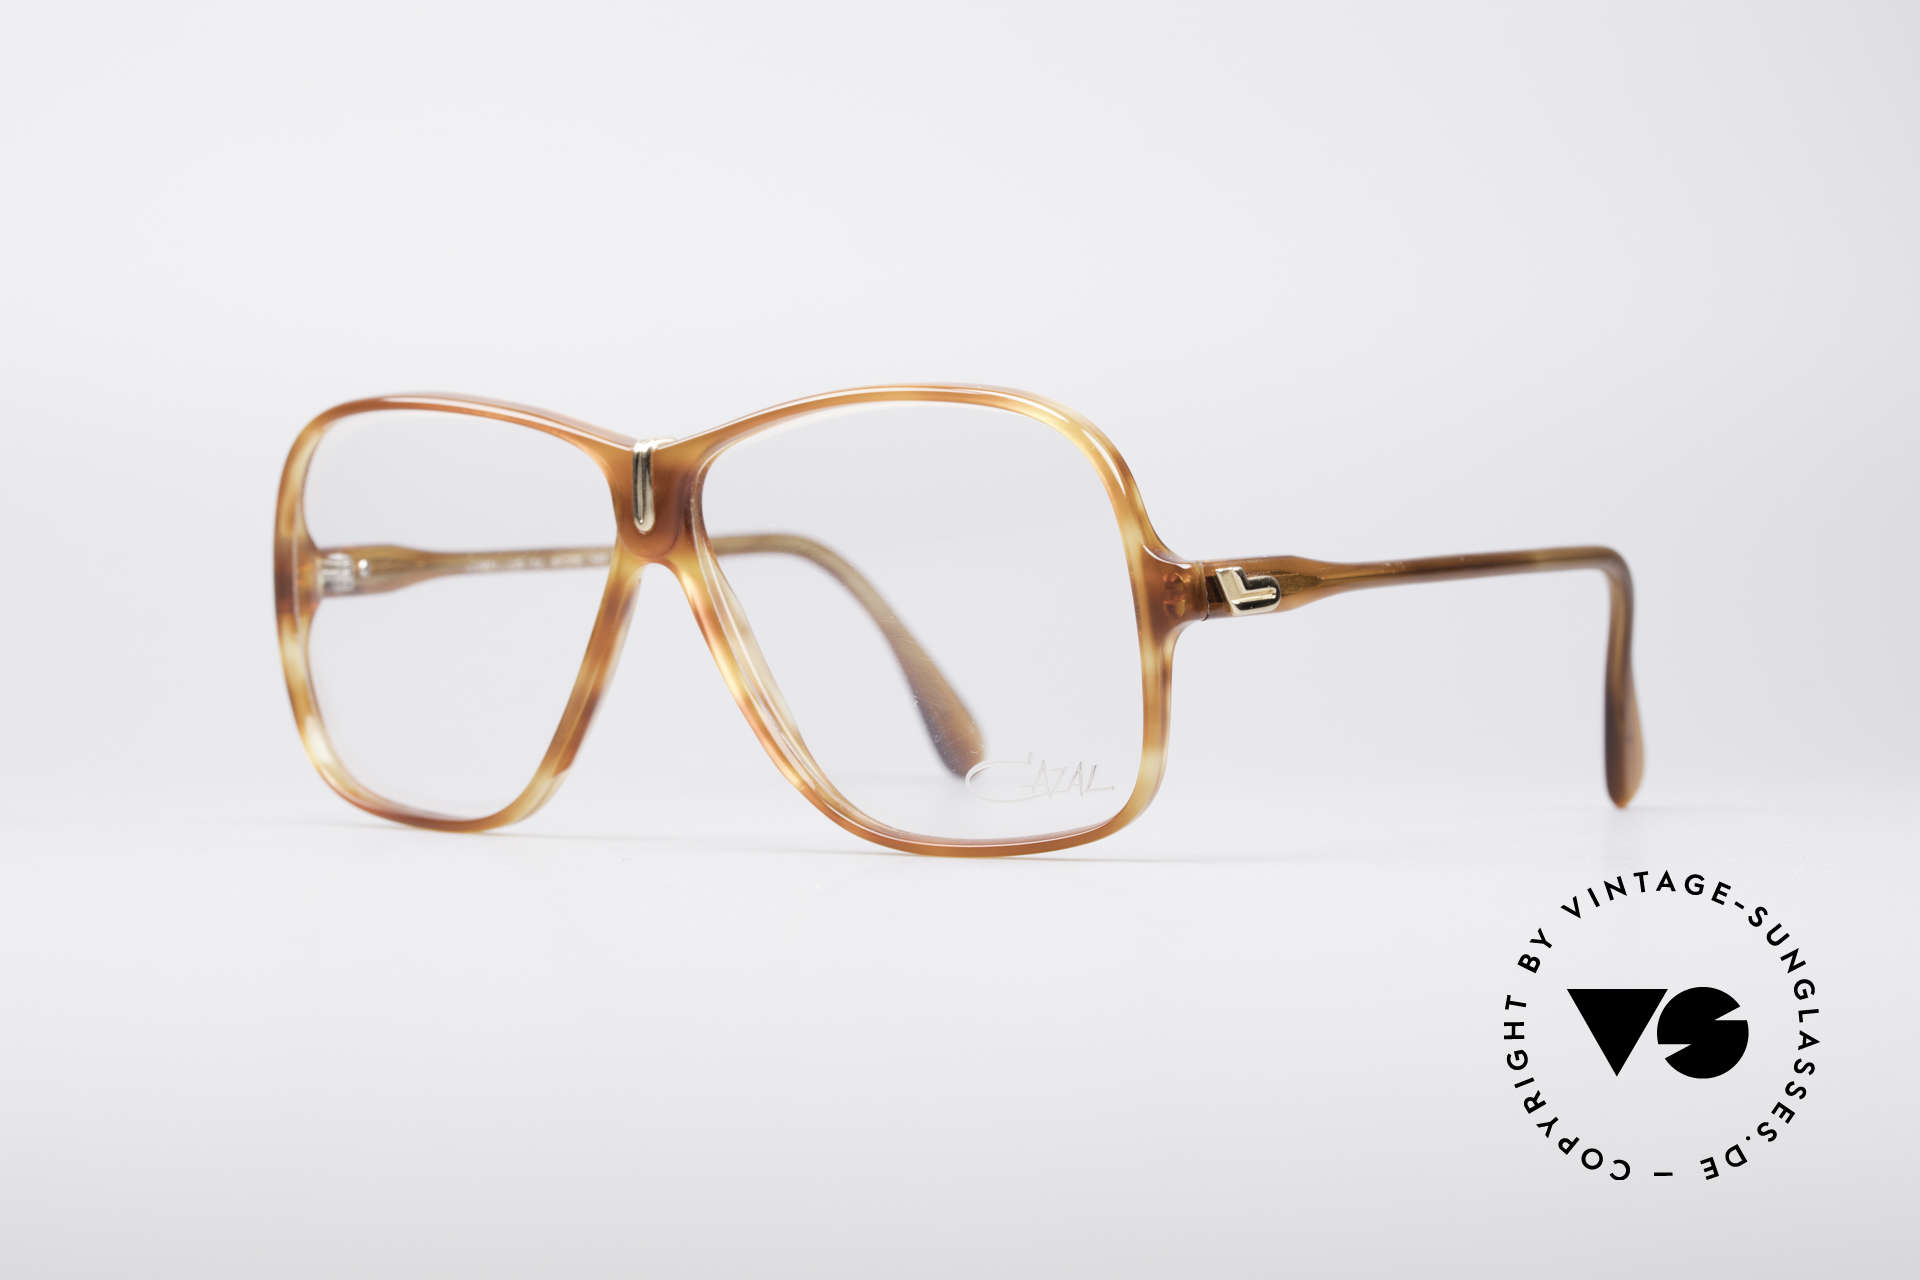 Cazal 621 West Germany Cazal Glasses, gents designer eyeglasses 'made in W.Germany', Made for Men